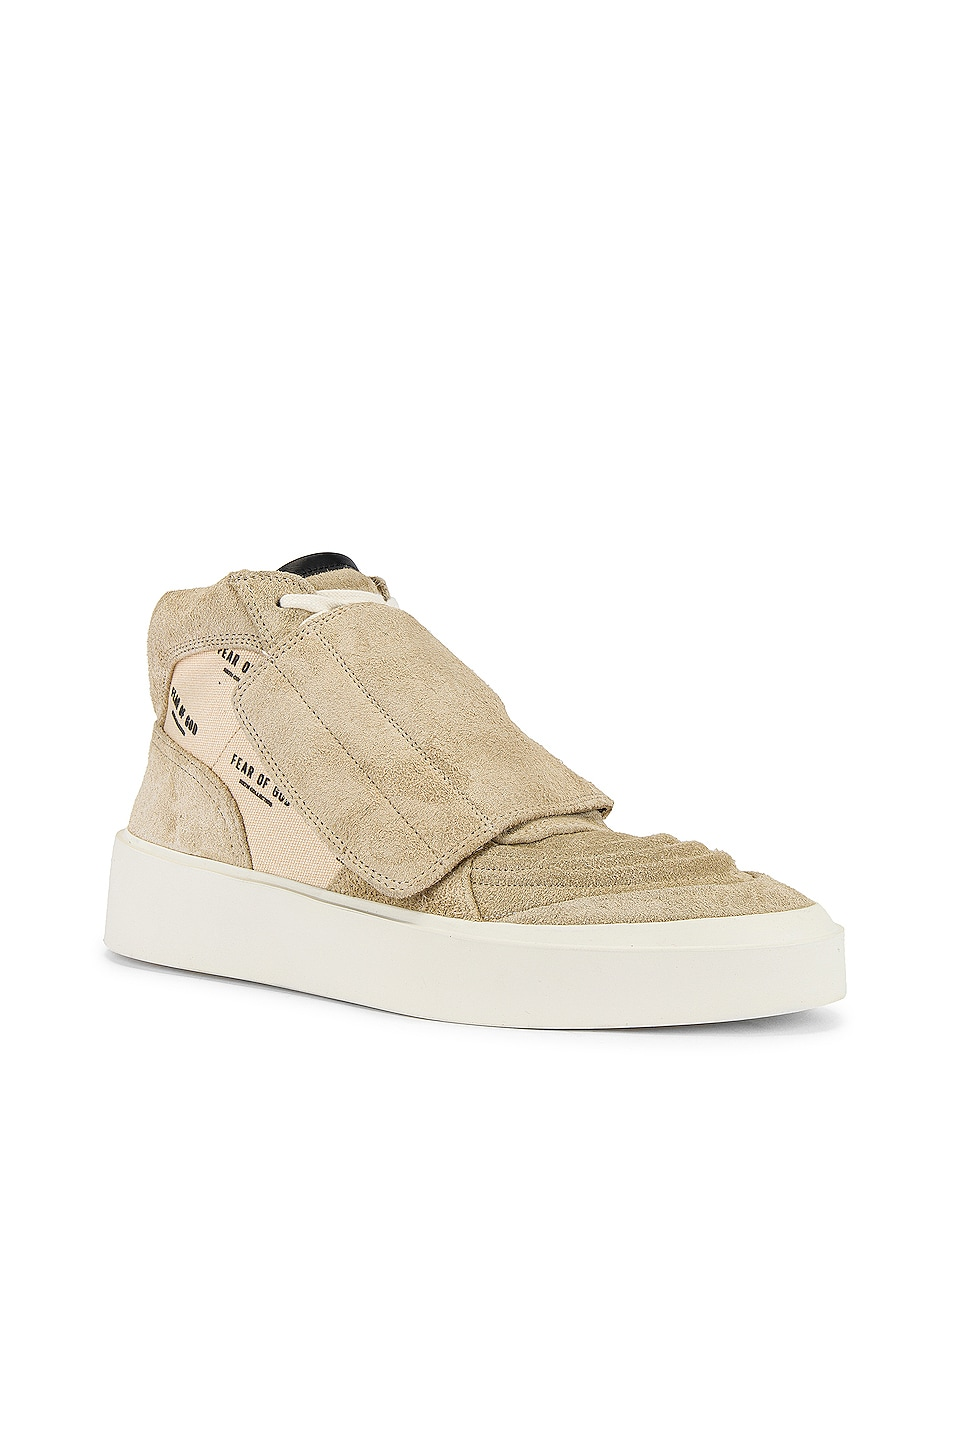 Image 1 of Fear of God Skate Mid Sneaker in Sand & Cream Fear of God Print